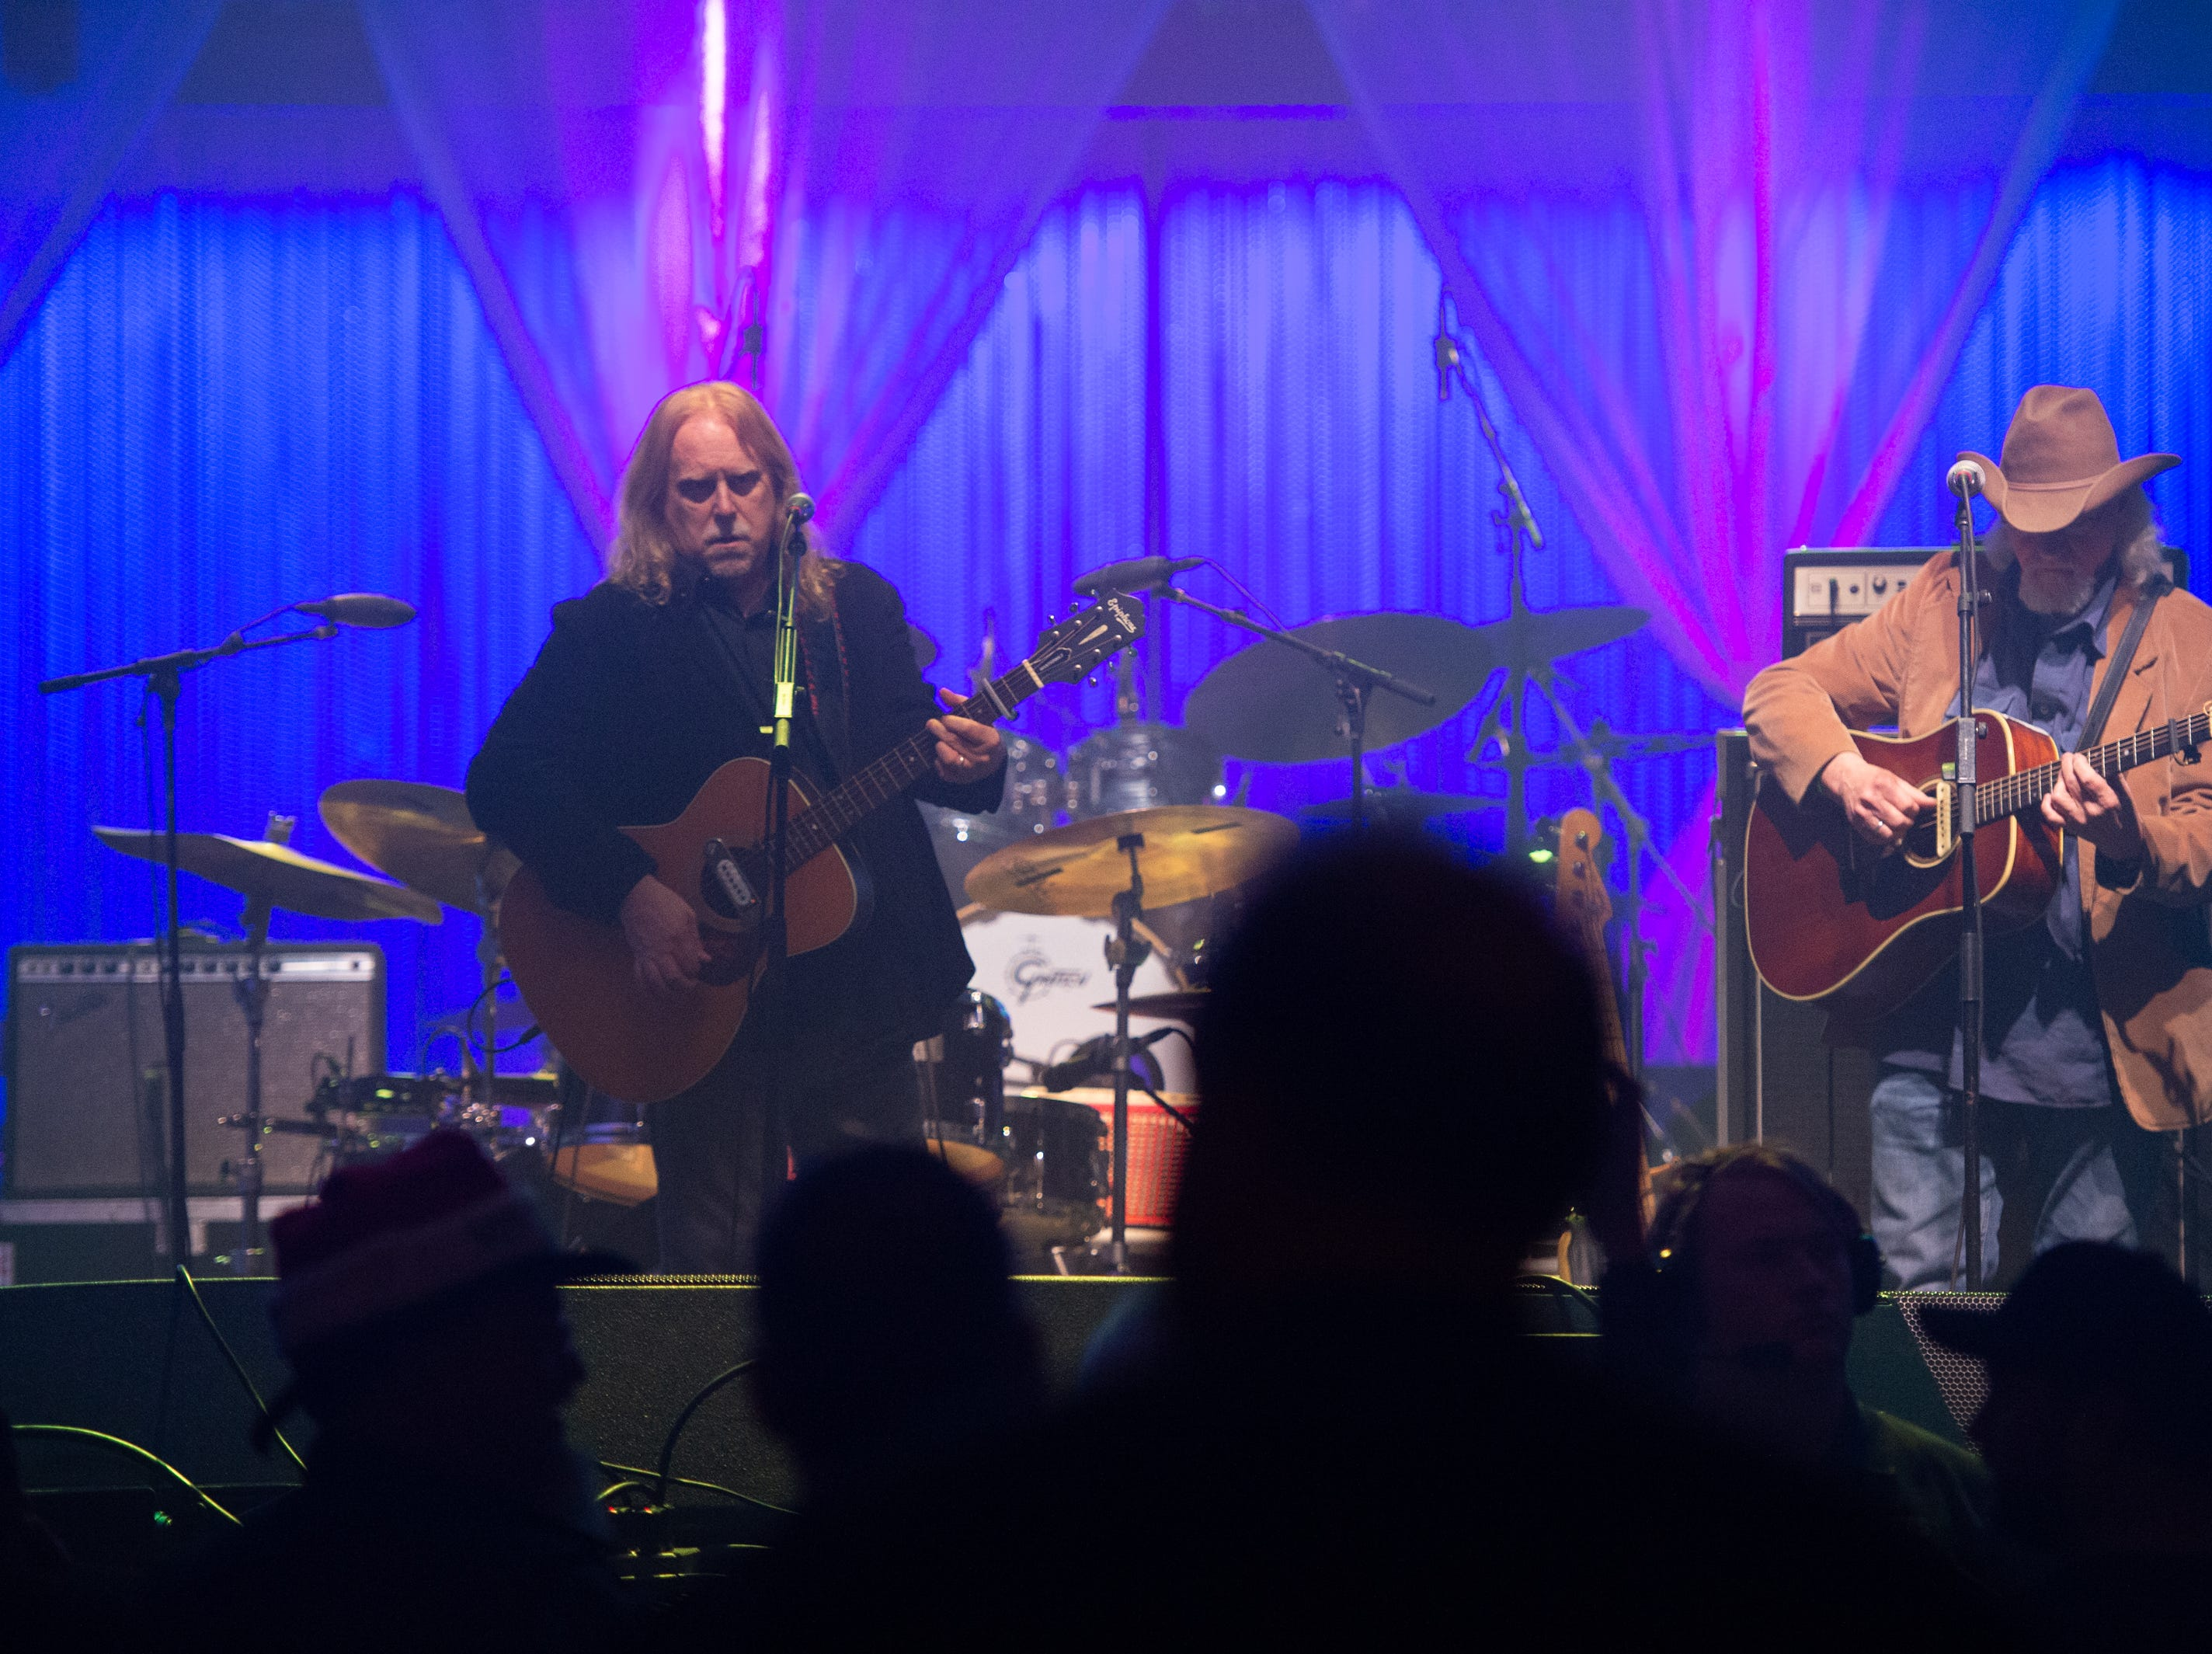 Warren Haynes performs an acoustic set on the first night of the 30th annual Christmas Jam at the U.S Cellular Center in Asheville, Dec. 7, 2018.